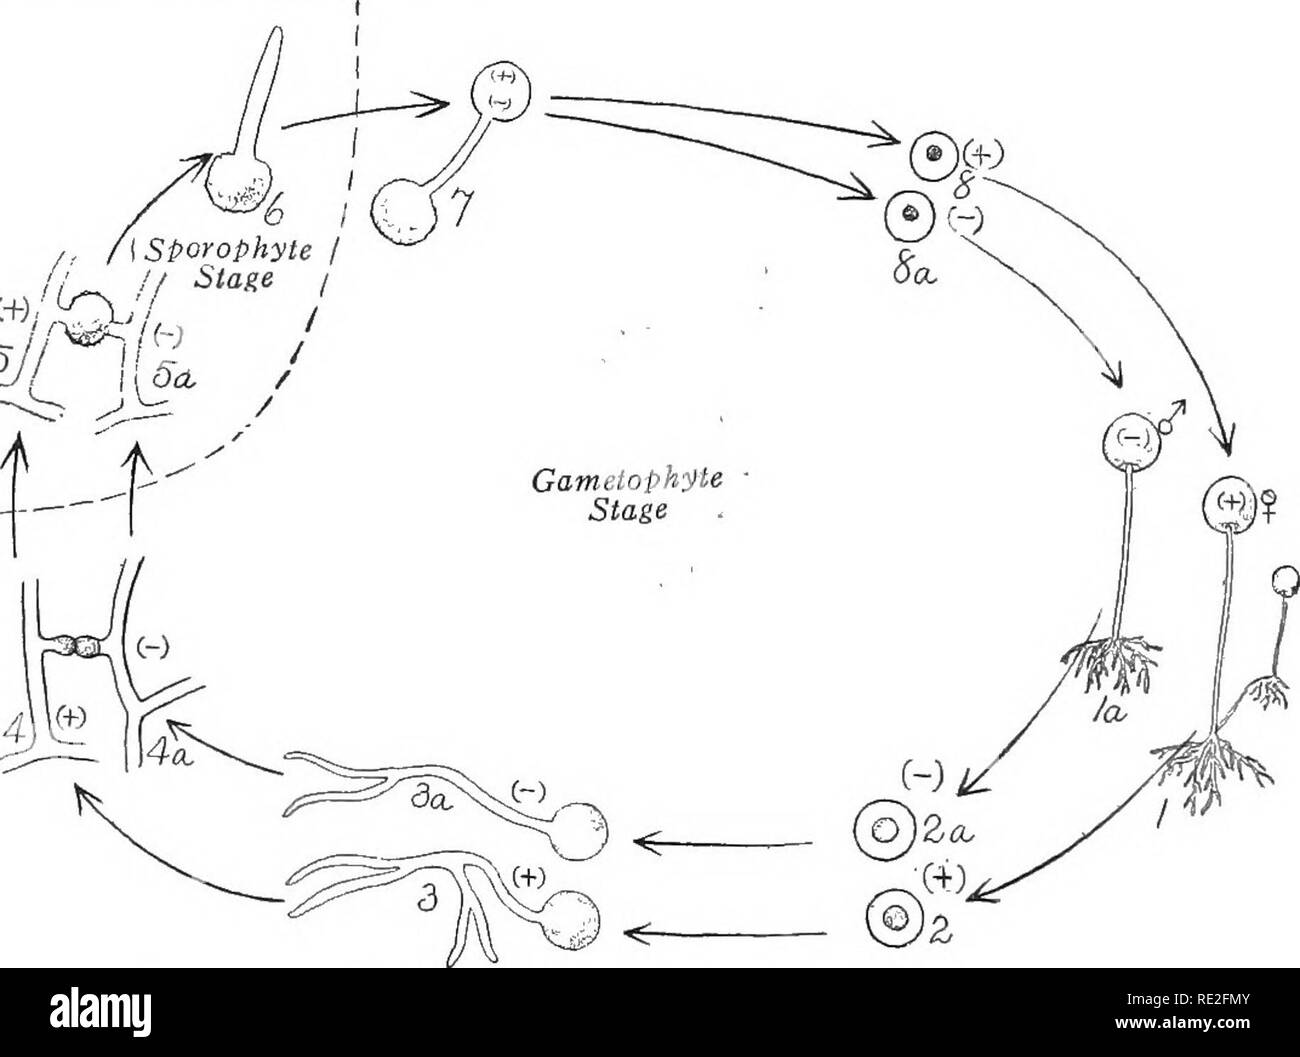 hight resolution of  fundamentals of botany botany 266 structure and life histories shown in fig 191 which illustrates the result of growing mycelia from unlike strains